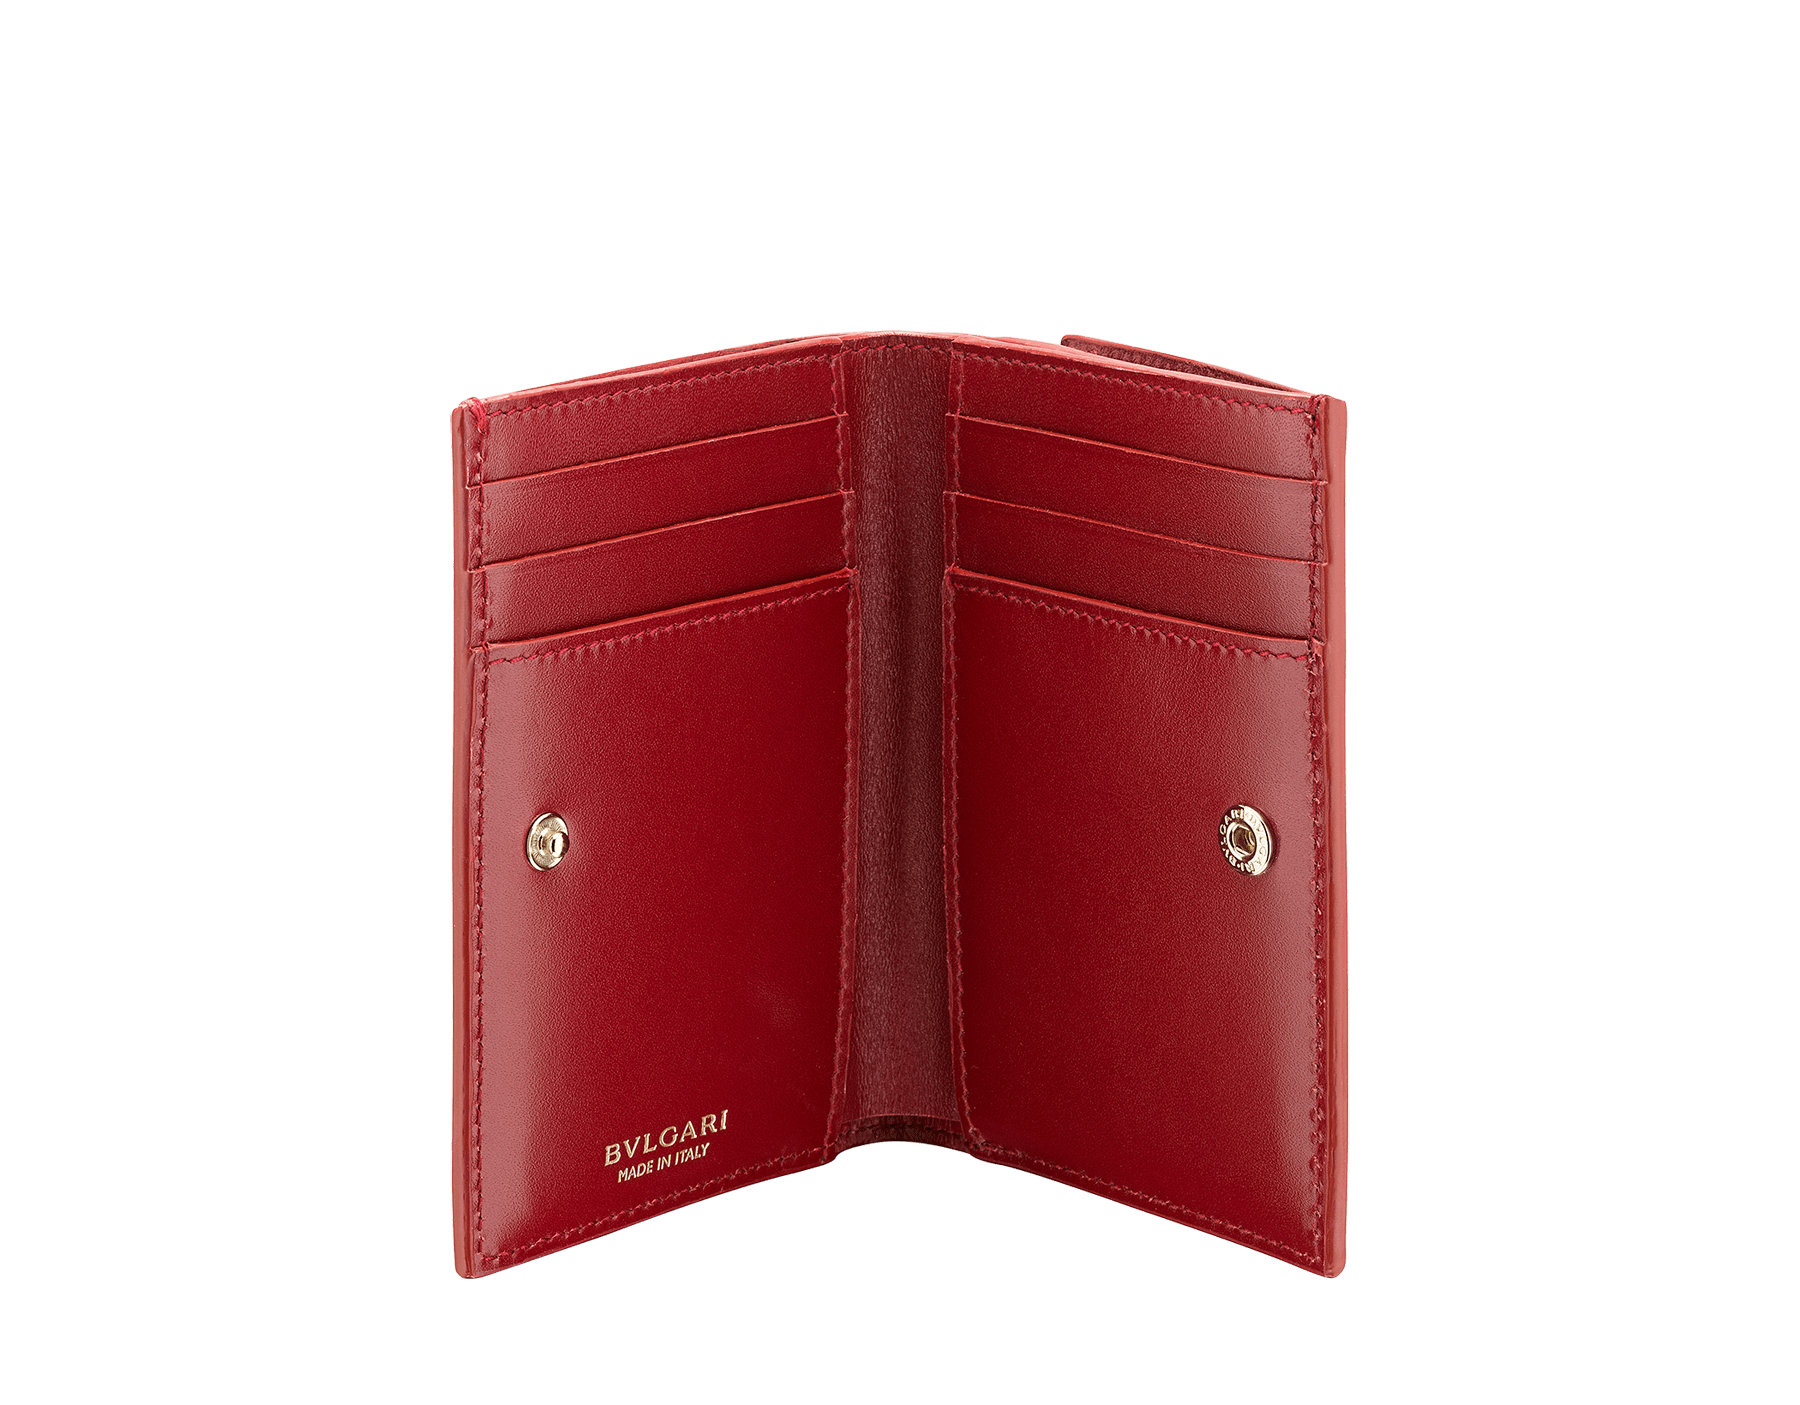 B.zero1 double folded credit card holder in carmine jasper and ruby red goatskin. Iconic B.zero1 charm in light gold plated brass. 289151 image 2